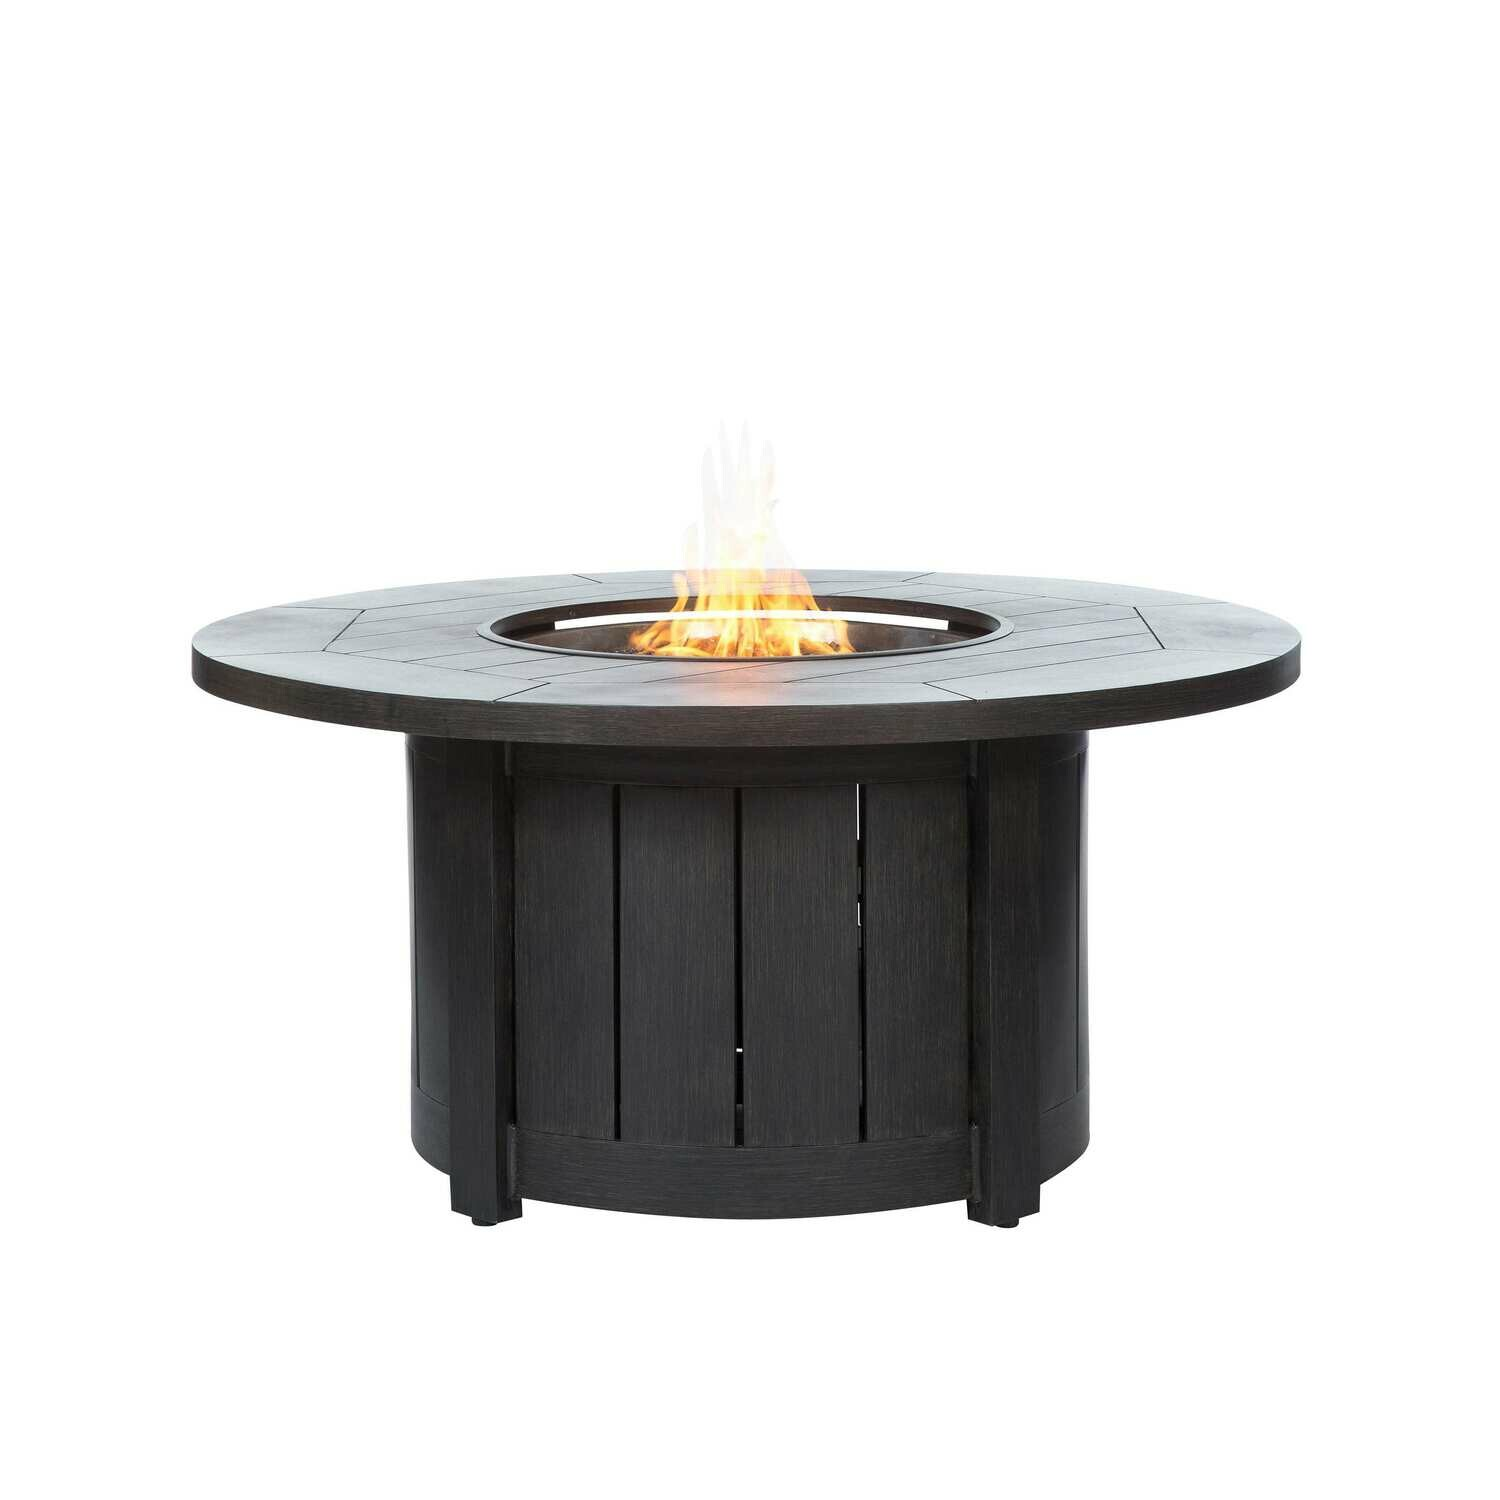 "Aluminum 50"" Round Fire Pit Table - Chestnut"